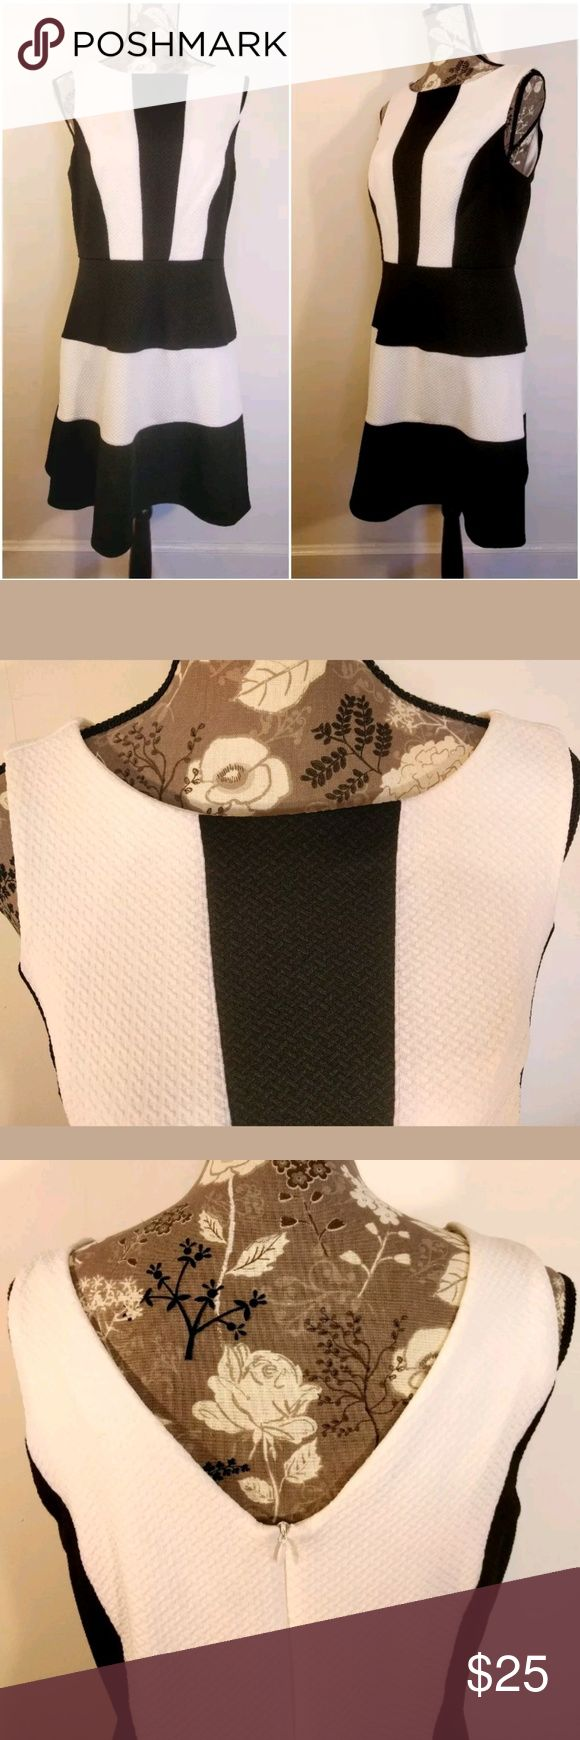 Womens Dress Size 12  Sleeveless?Lovely Texture Womens Dress  Size 12  Sleeveless?  Lovely Textured Fabric  Zip up V Back  Classic Black and White  Very Flattering  Great Under a Blazer or Sweater for Work and Then Off to an Evening Out  Measurements Available Upon Receipt  SMOKE FREE HOME Dresses